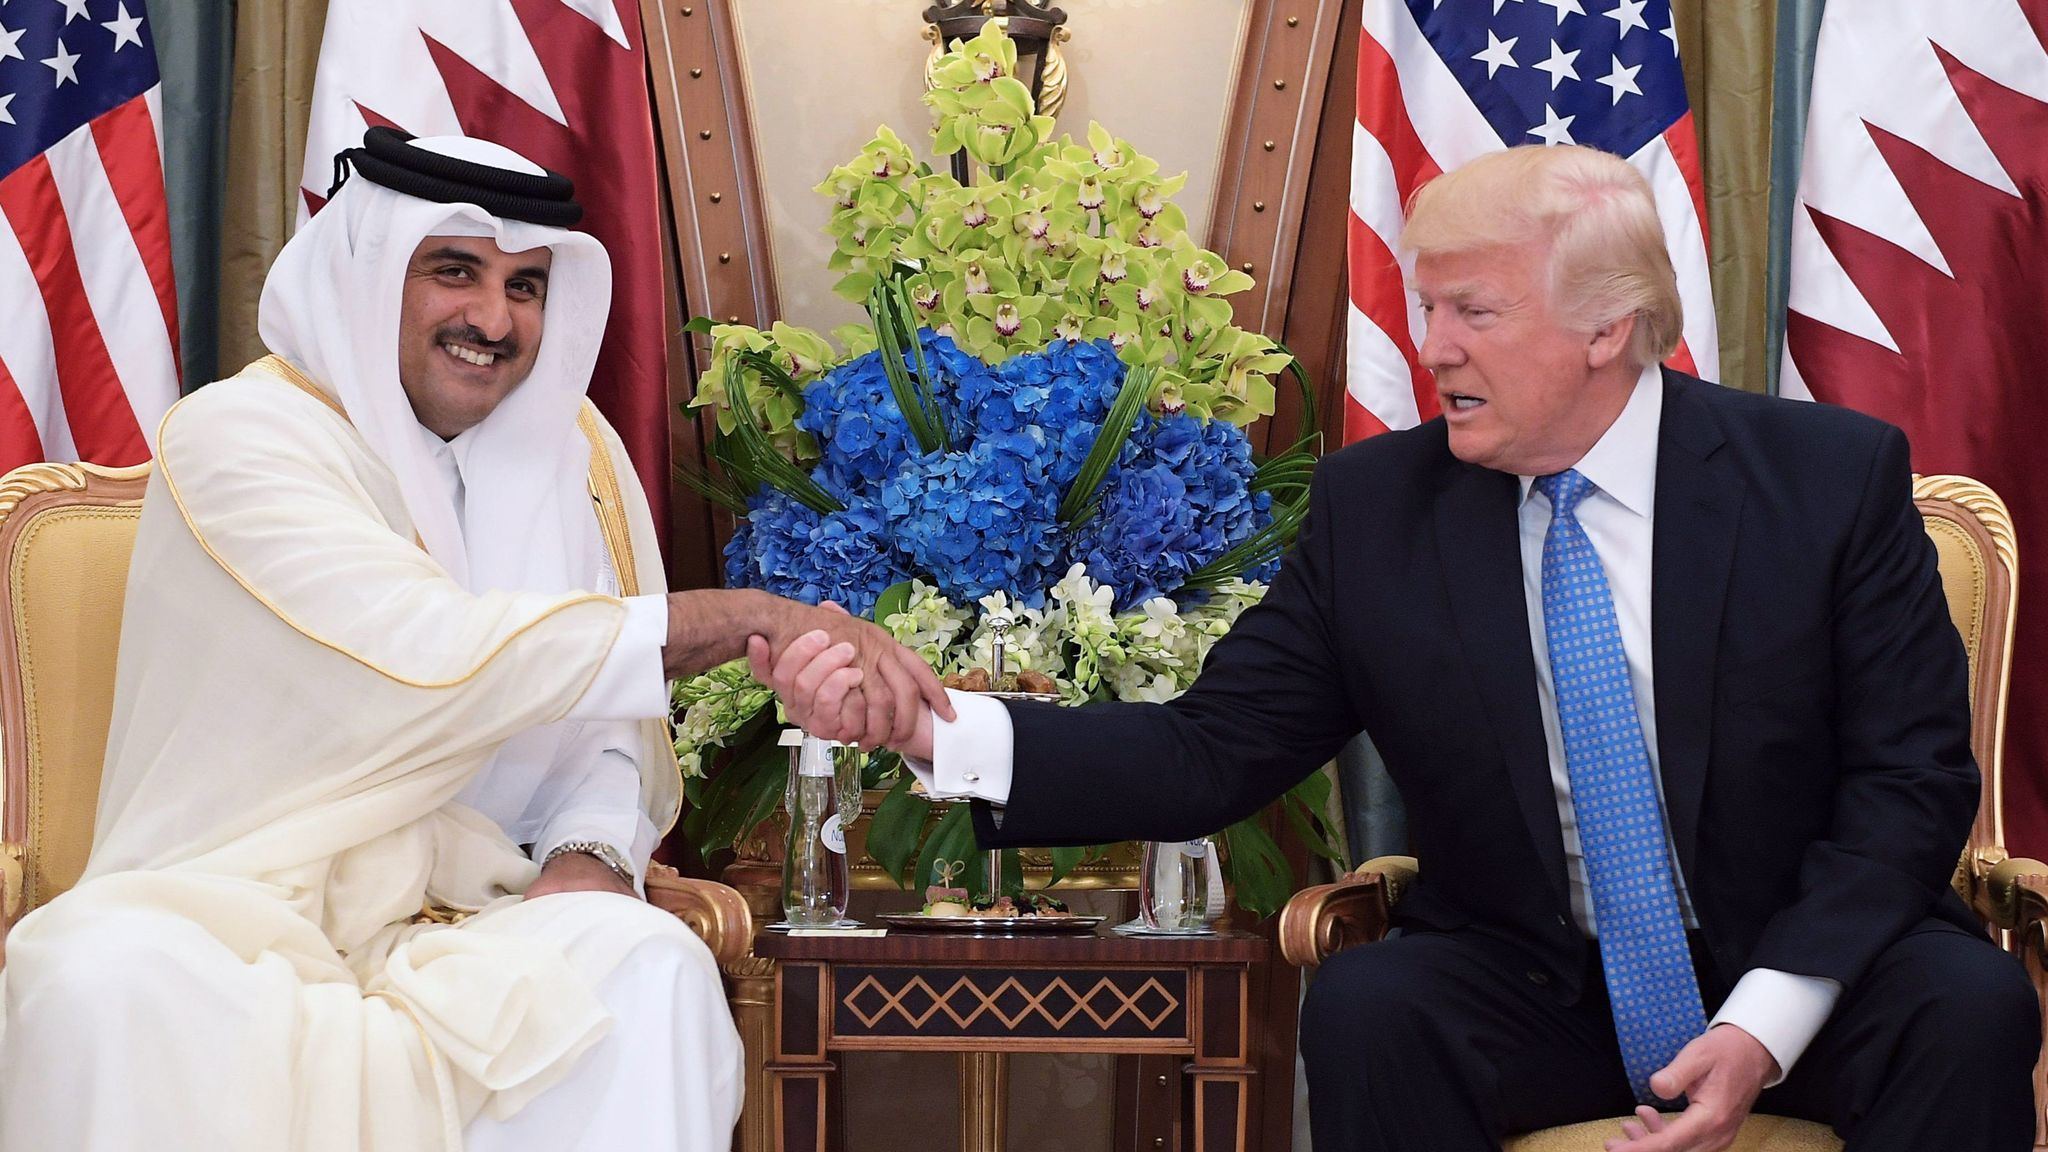 President Trump and Qatar's Emir Sheik Tamim bin Hamad al Thani during a bilateral meeting at a hotel in the Saudi capital, Riyadh, in May 2017.